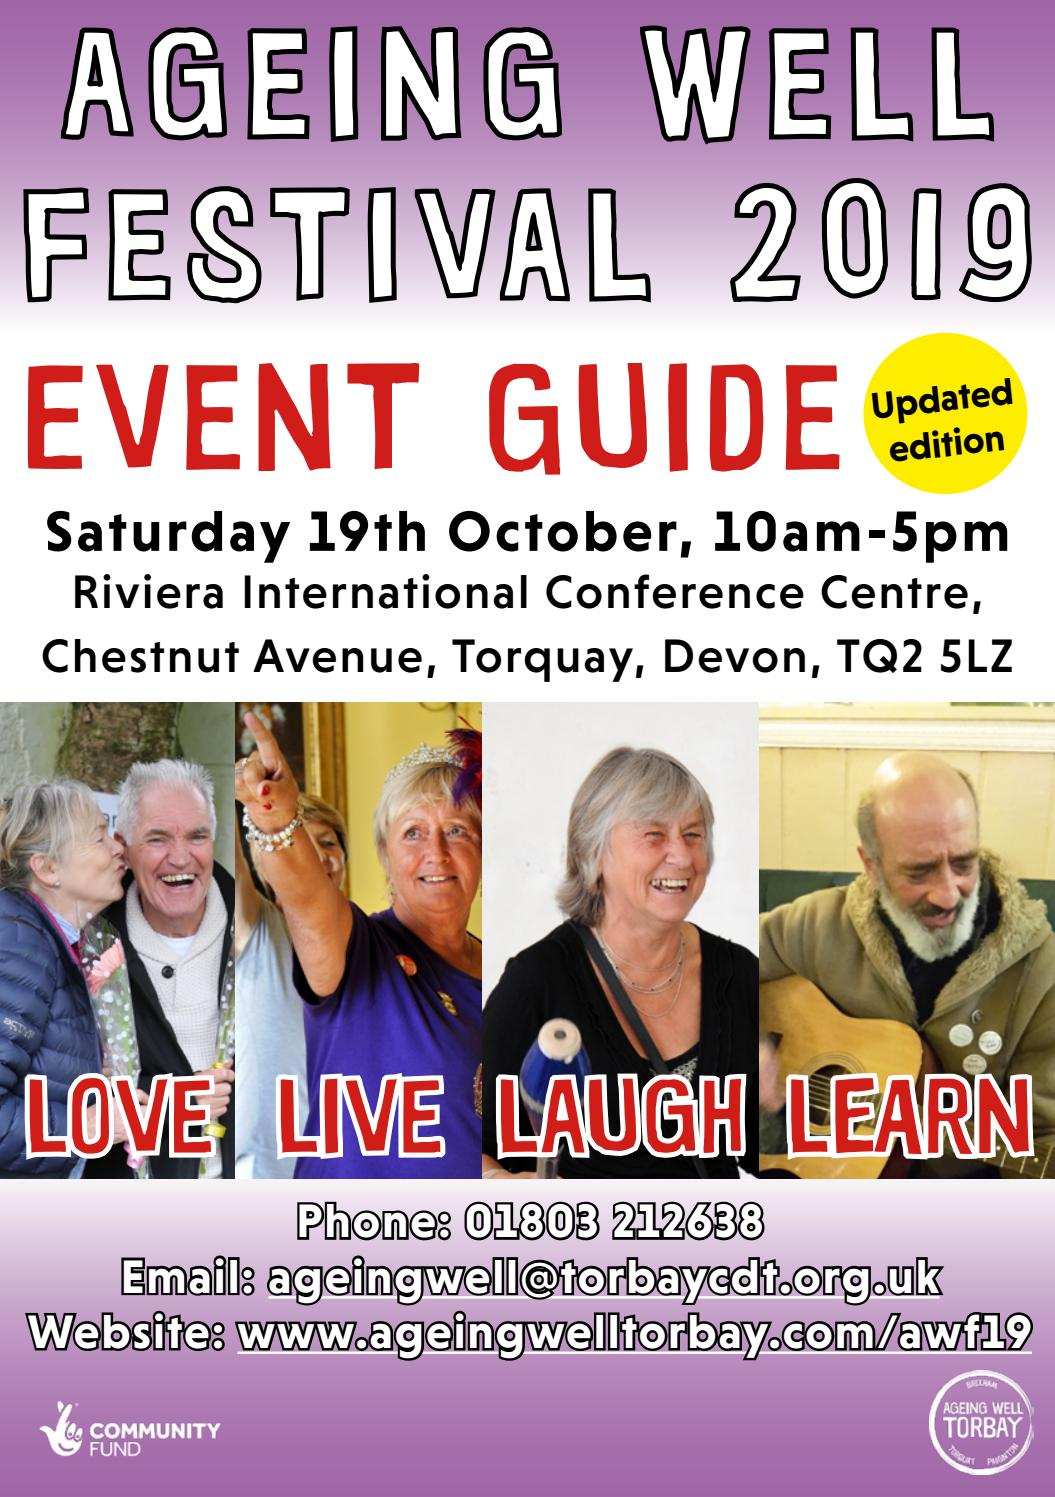 Ageing Well Festival 2019 Event Guide By Torbay Community Development Trust Issuu